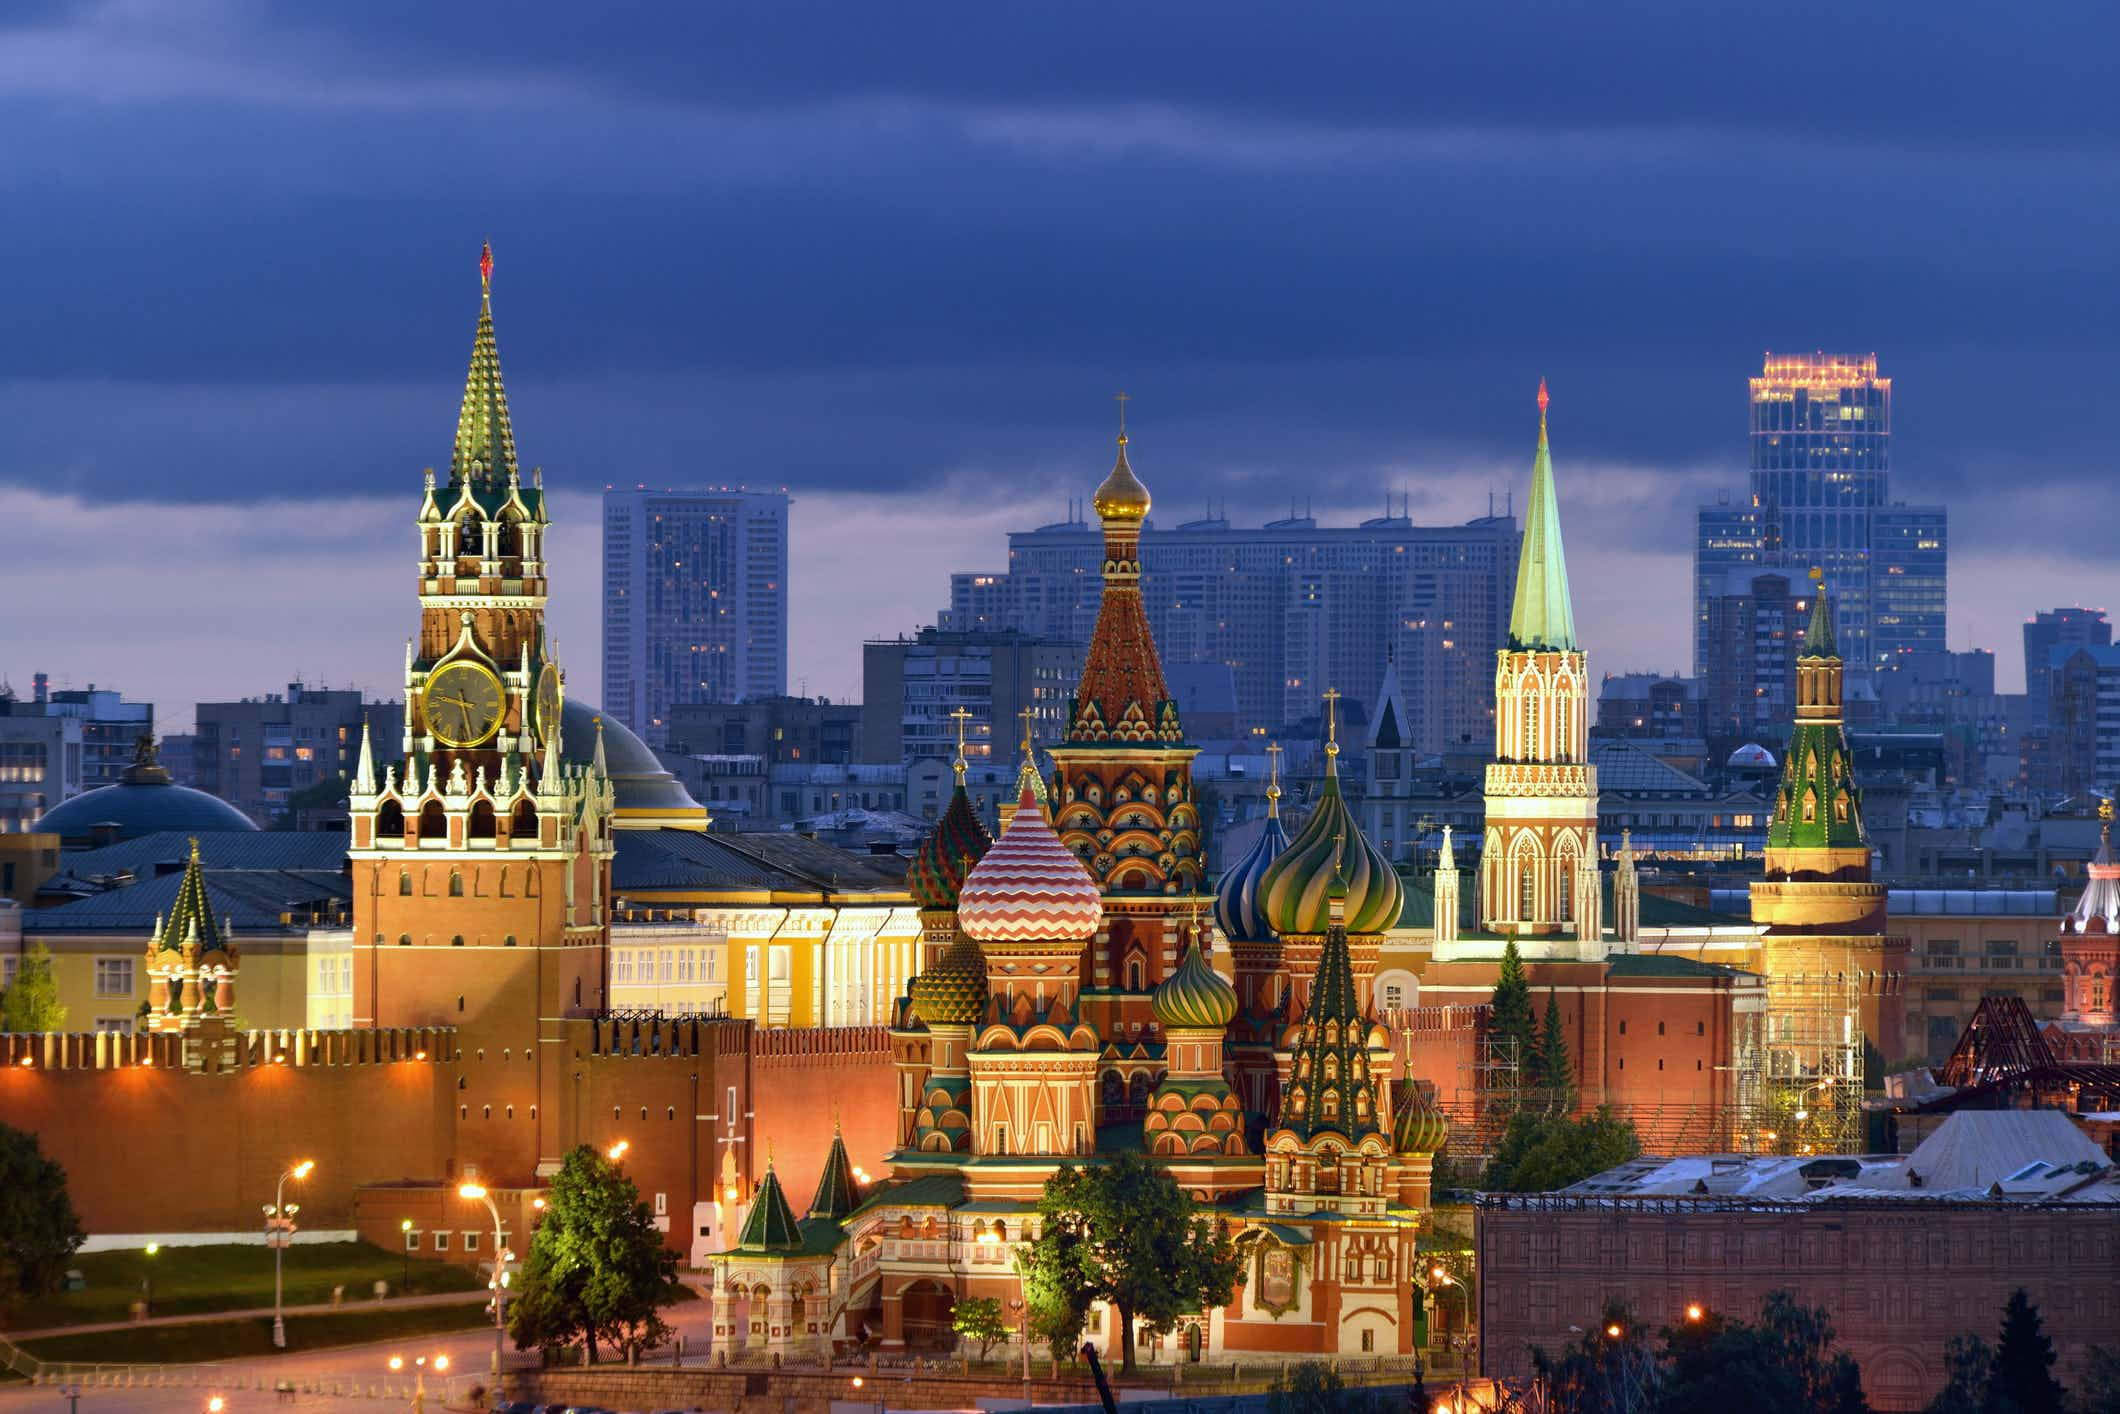 Moscow is turning 870 this week and throwing a 10 day party to celebrate